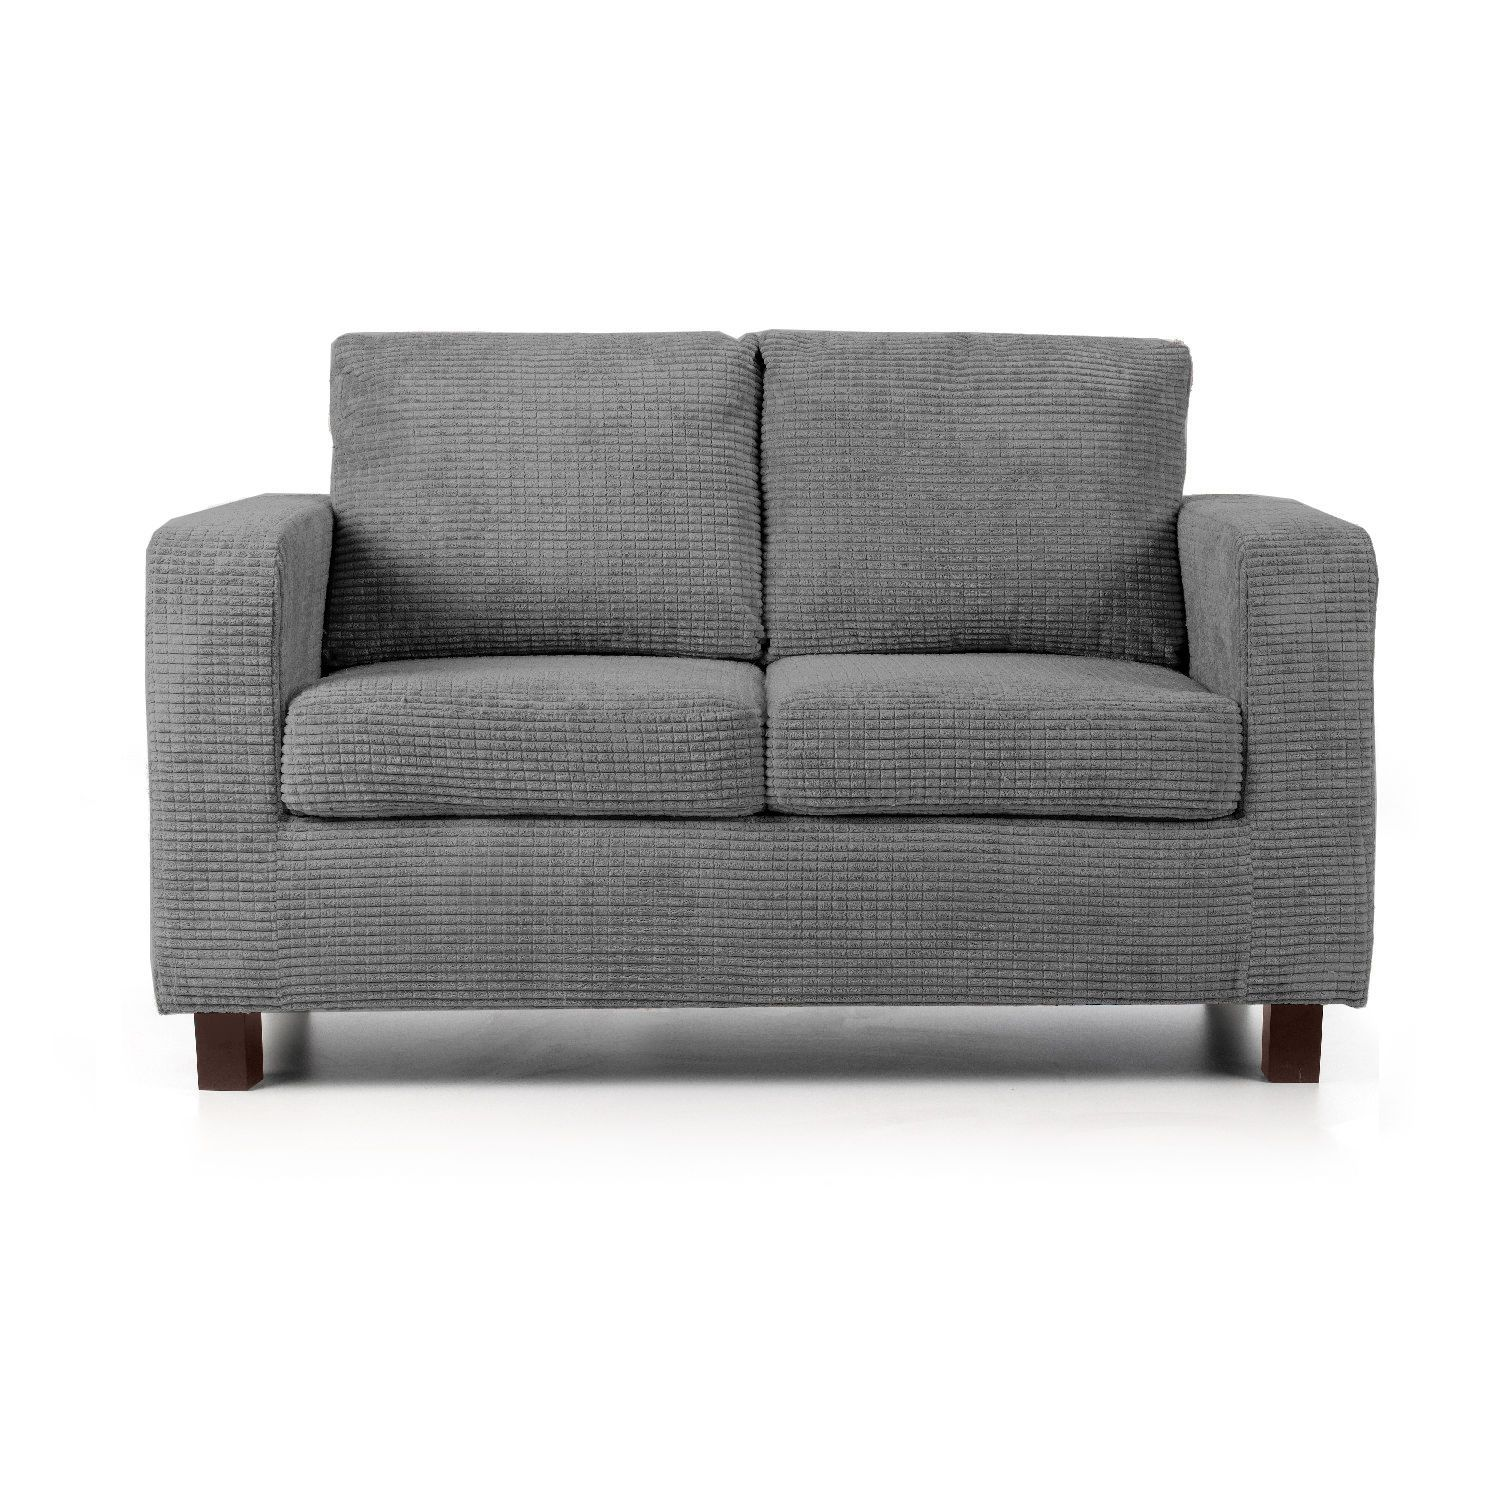 Max 2 Seater Fabric Sofa – Next Day Delivery Max 2 Seater Fabric